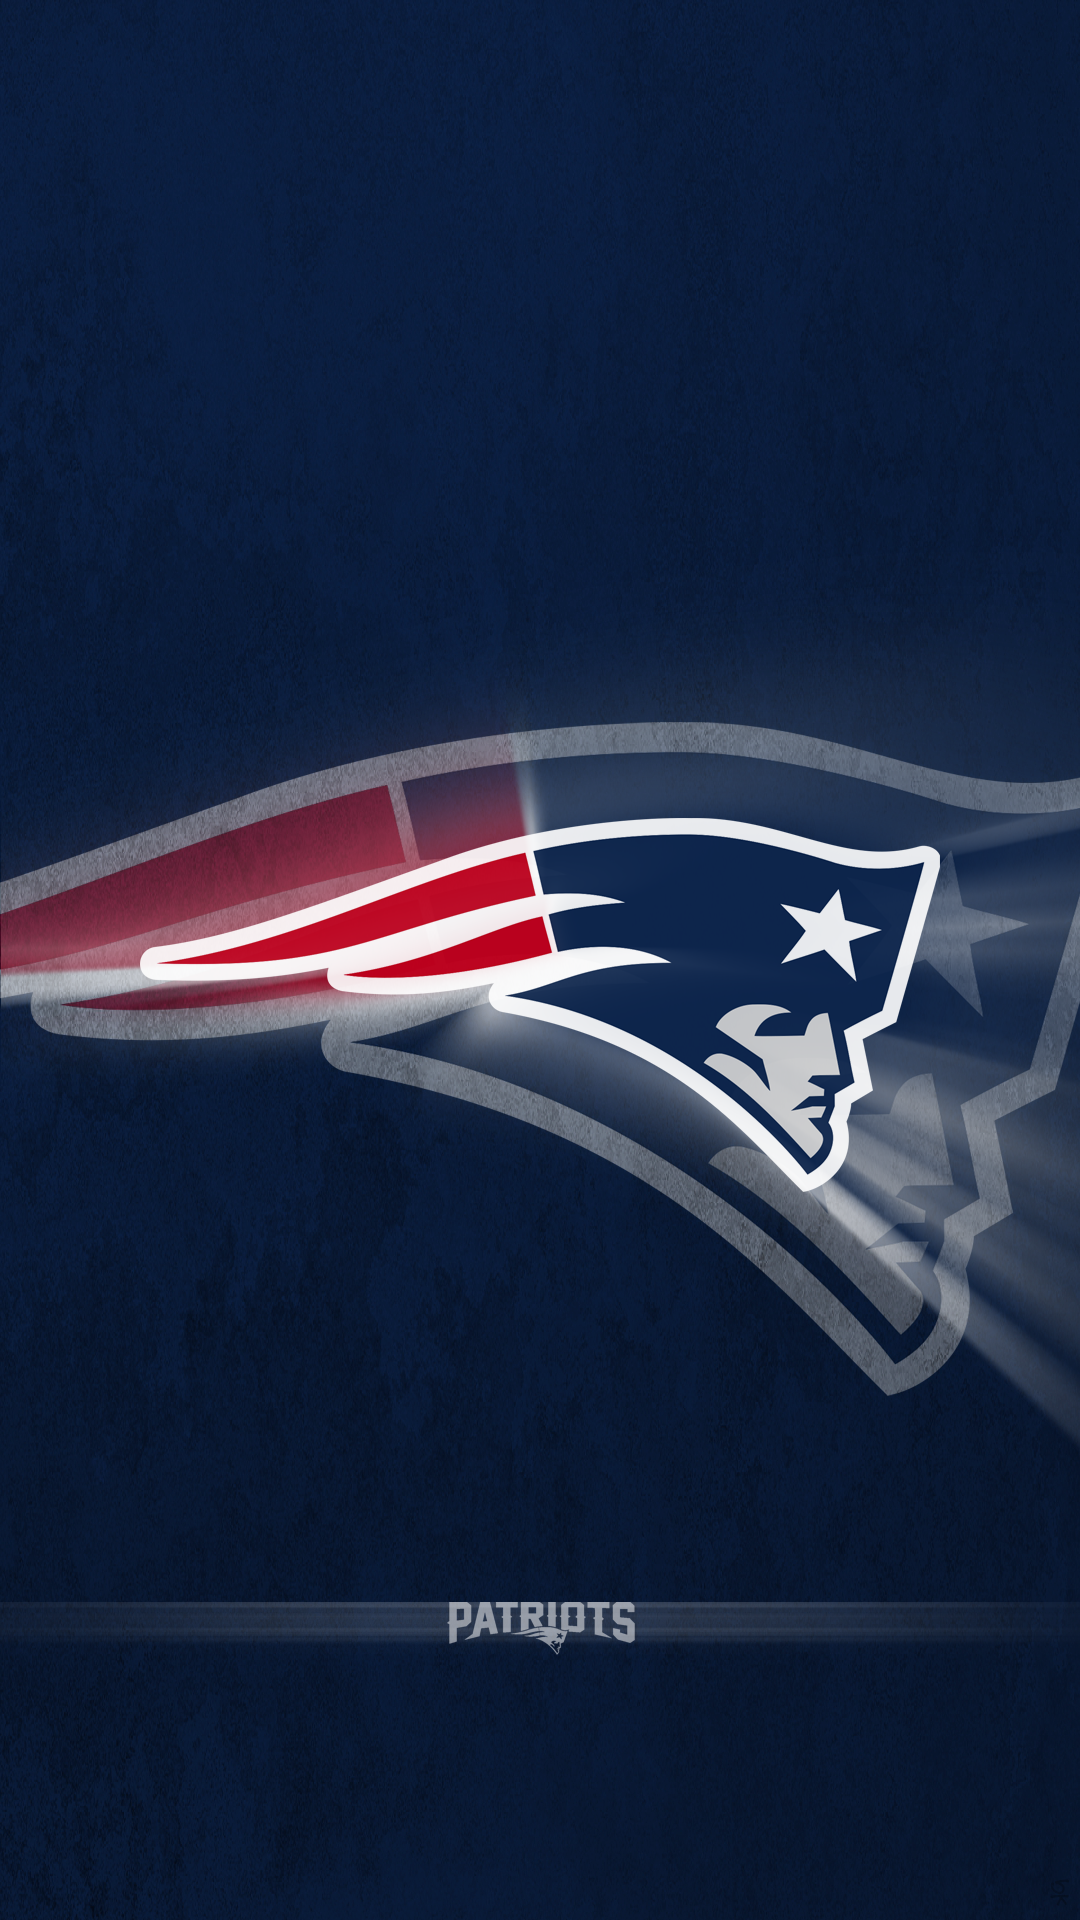 New Patriots Pics, View #39315583 Patriots Wallpapers